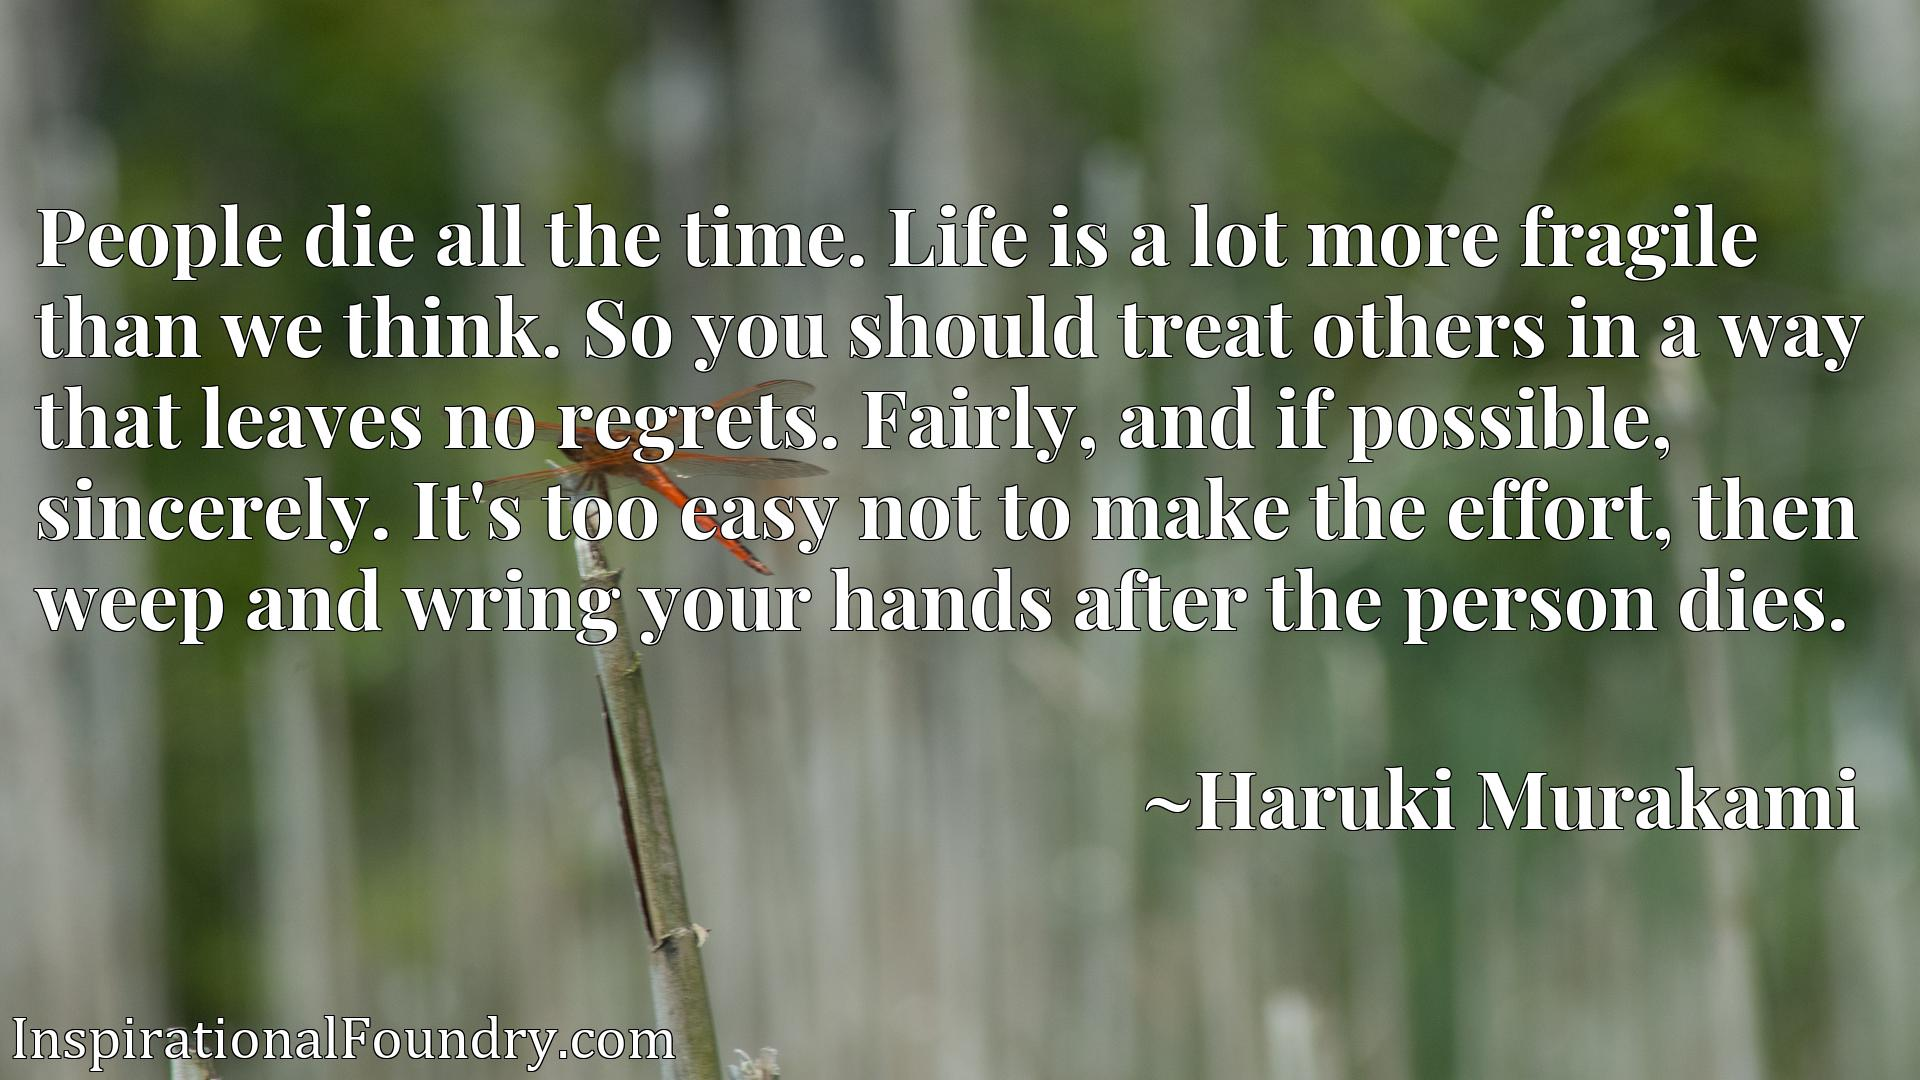 Quote Picture :People die all the time. Life is a lot more fragile than we think. So you should treat others in a way that leaves no regrets. Fairly, and if possible, sincerely. It's too easy not to make the effort, then weep and wring your hands after the person dies.